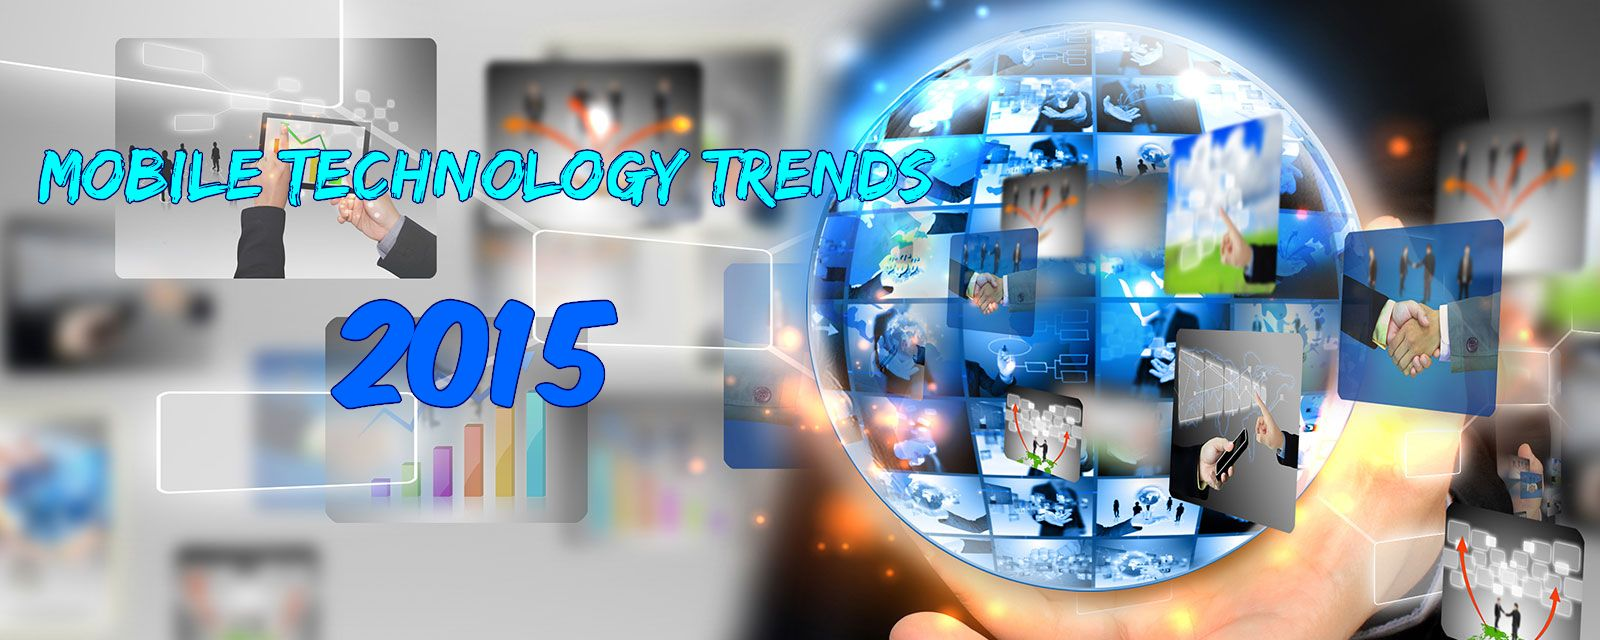 Top 10 mobile technology trends to witness in 2015